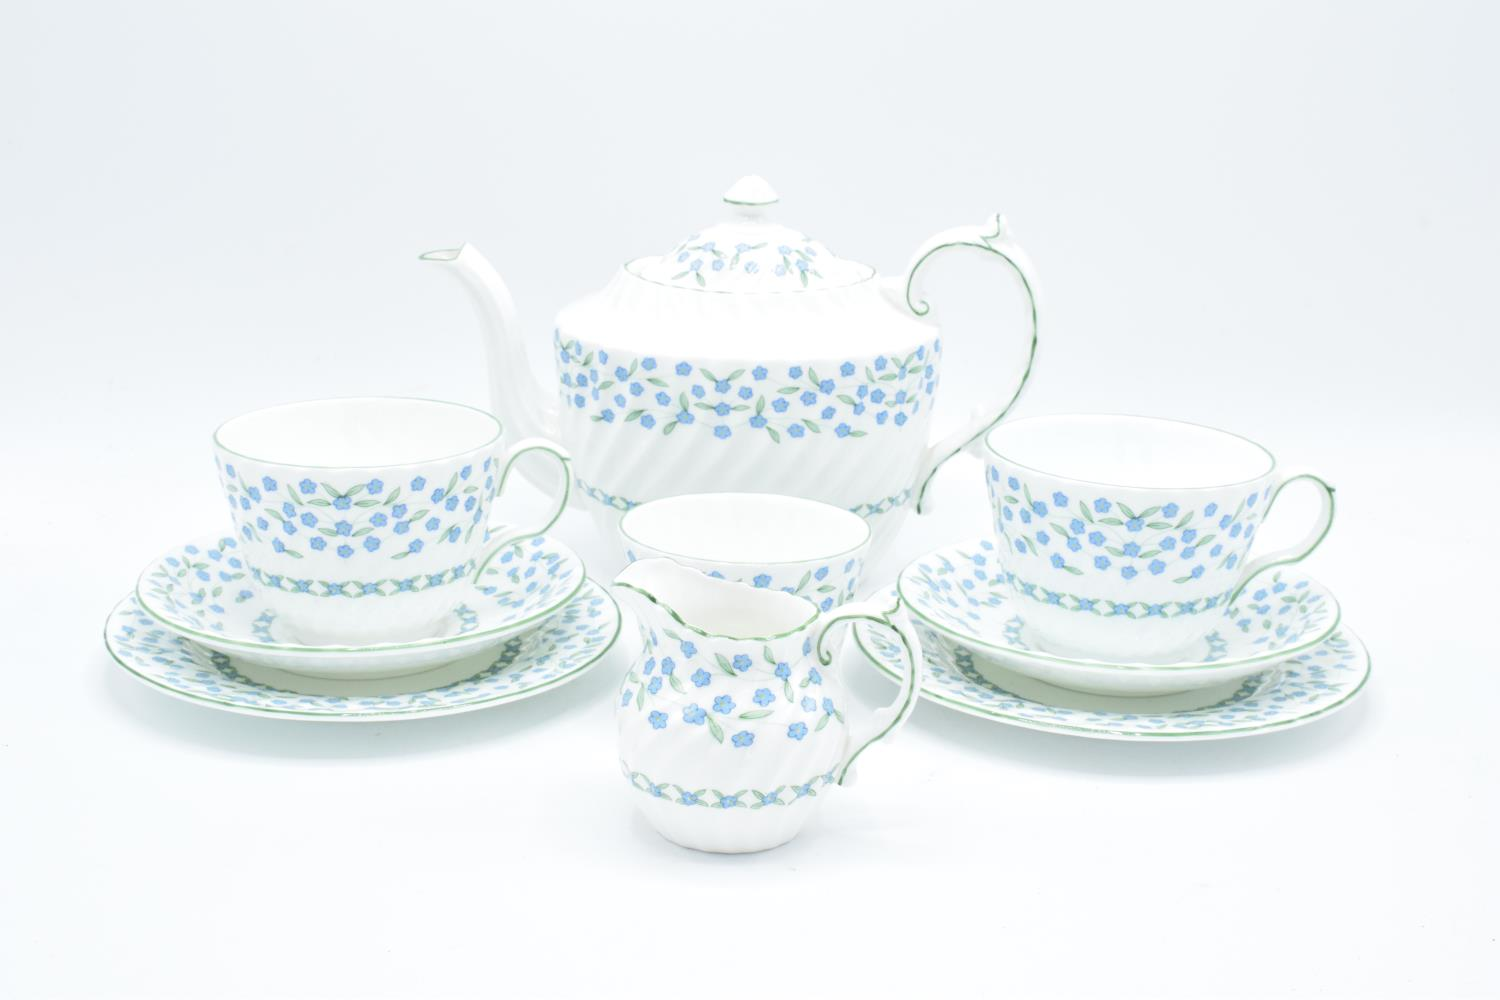 Aynsley Forget Me Not tea for two: teapot, milk, sugar and 2 trios (9) All in good condition without